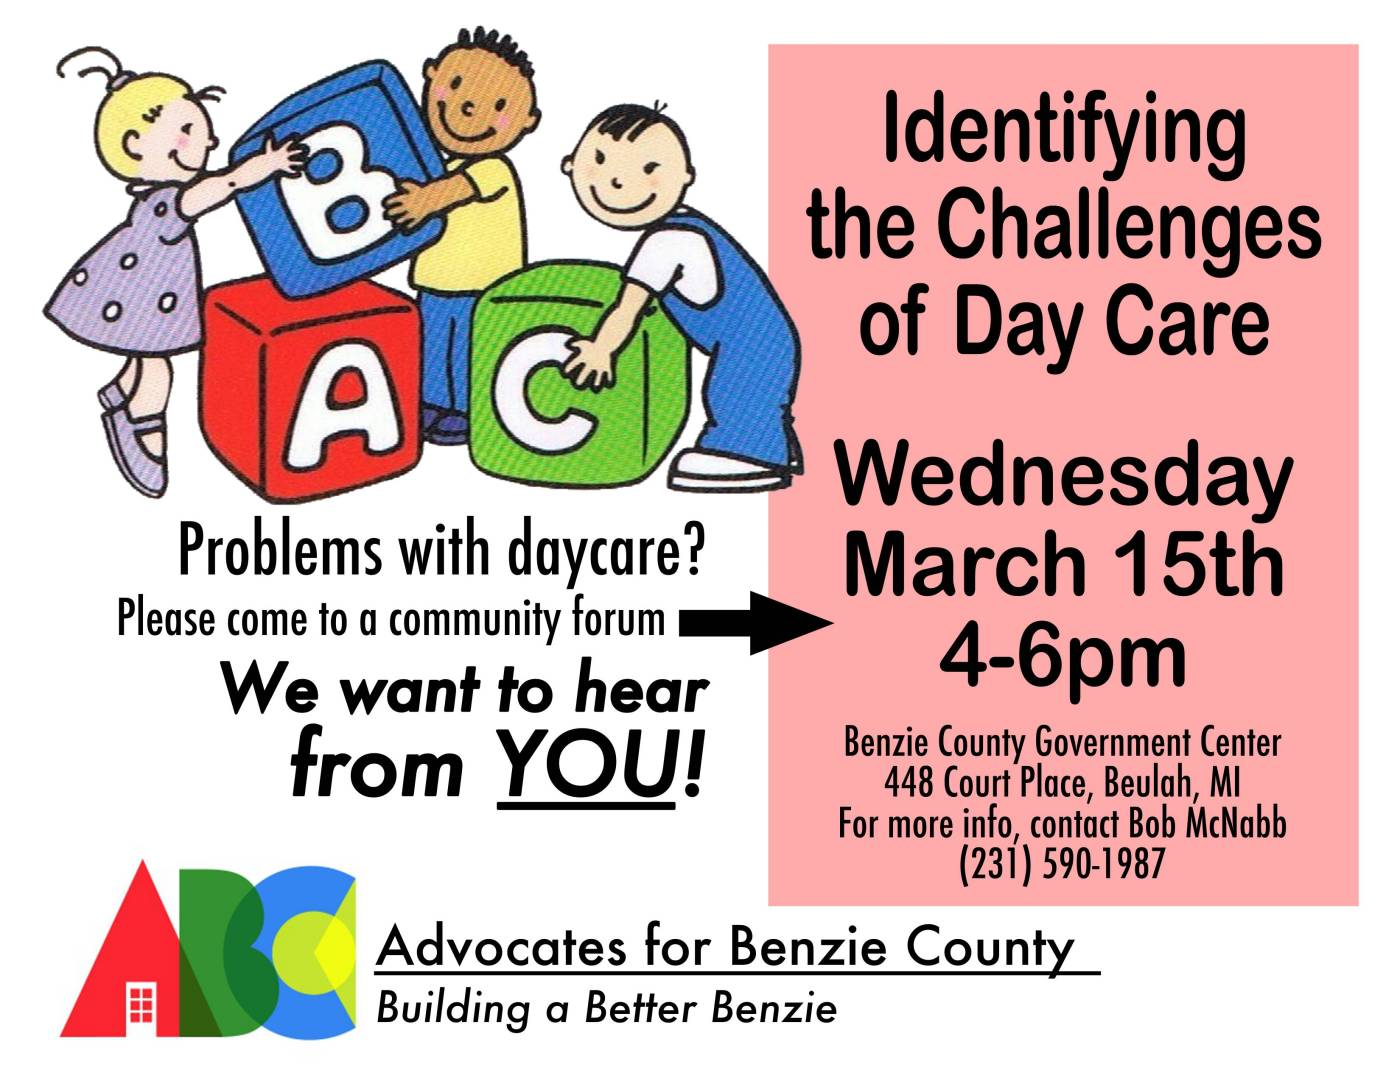 Michigan benzie county benzonia - Day Care And Child Care Identifying The Challenges